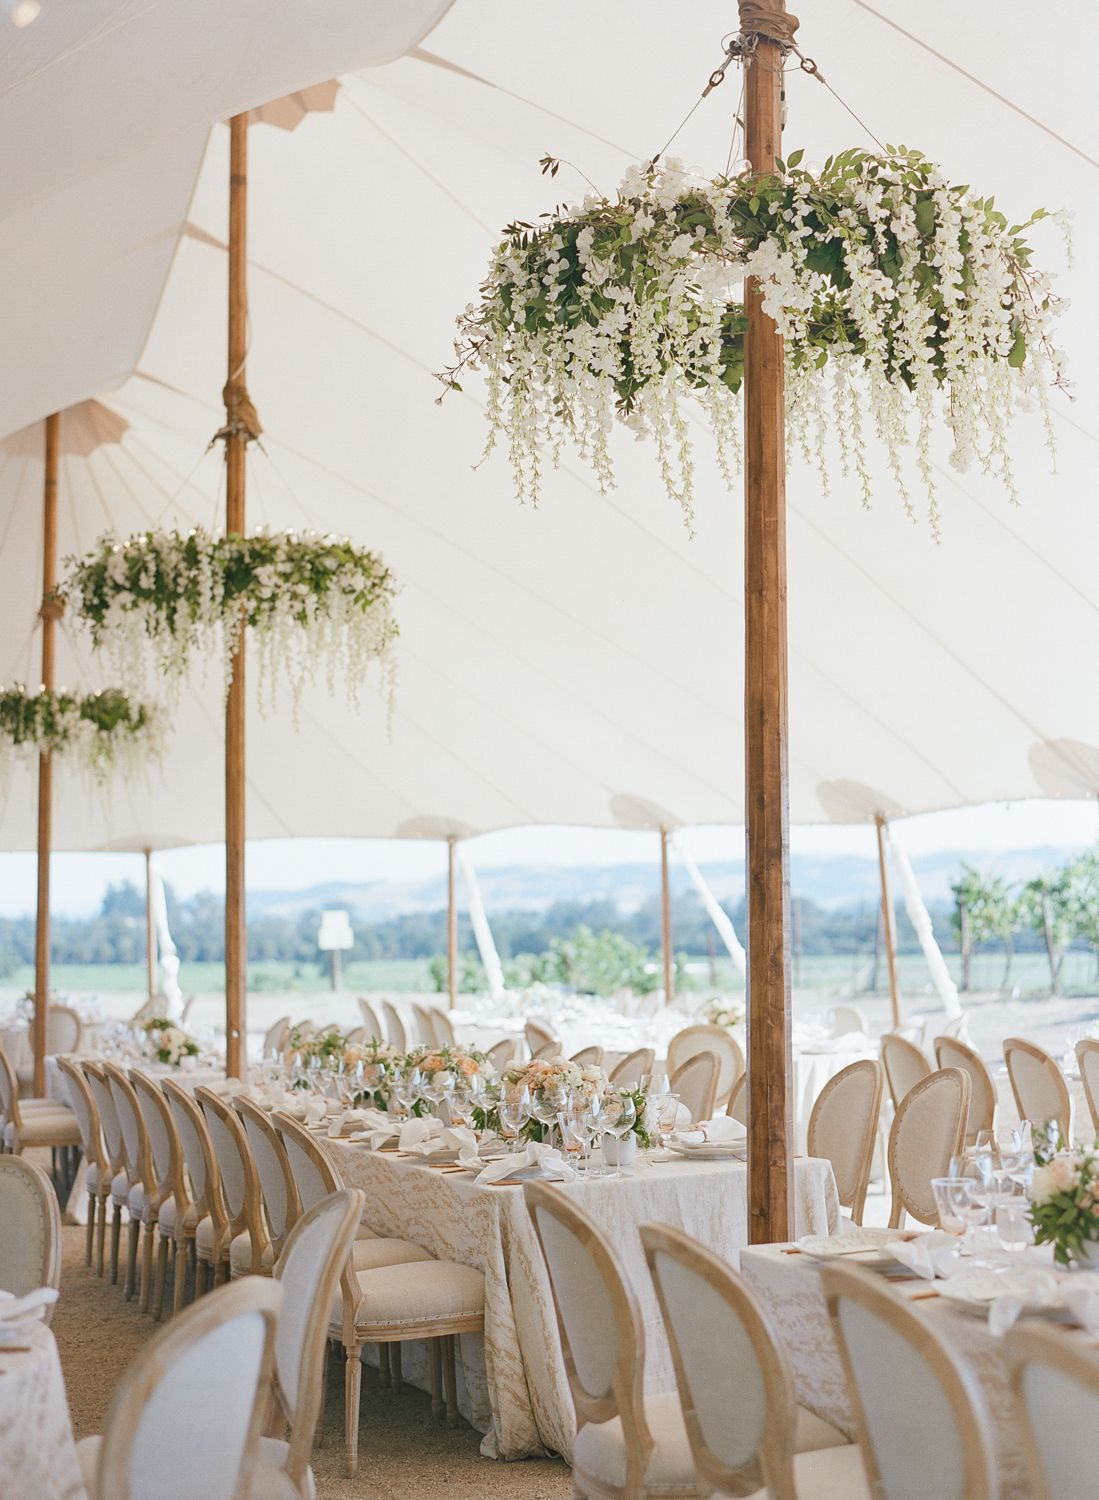 Linen wedding: what to give Linen wedding - how old 66